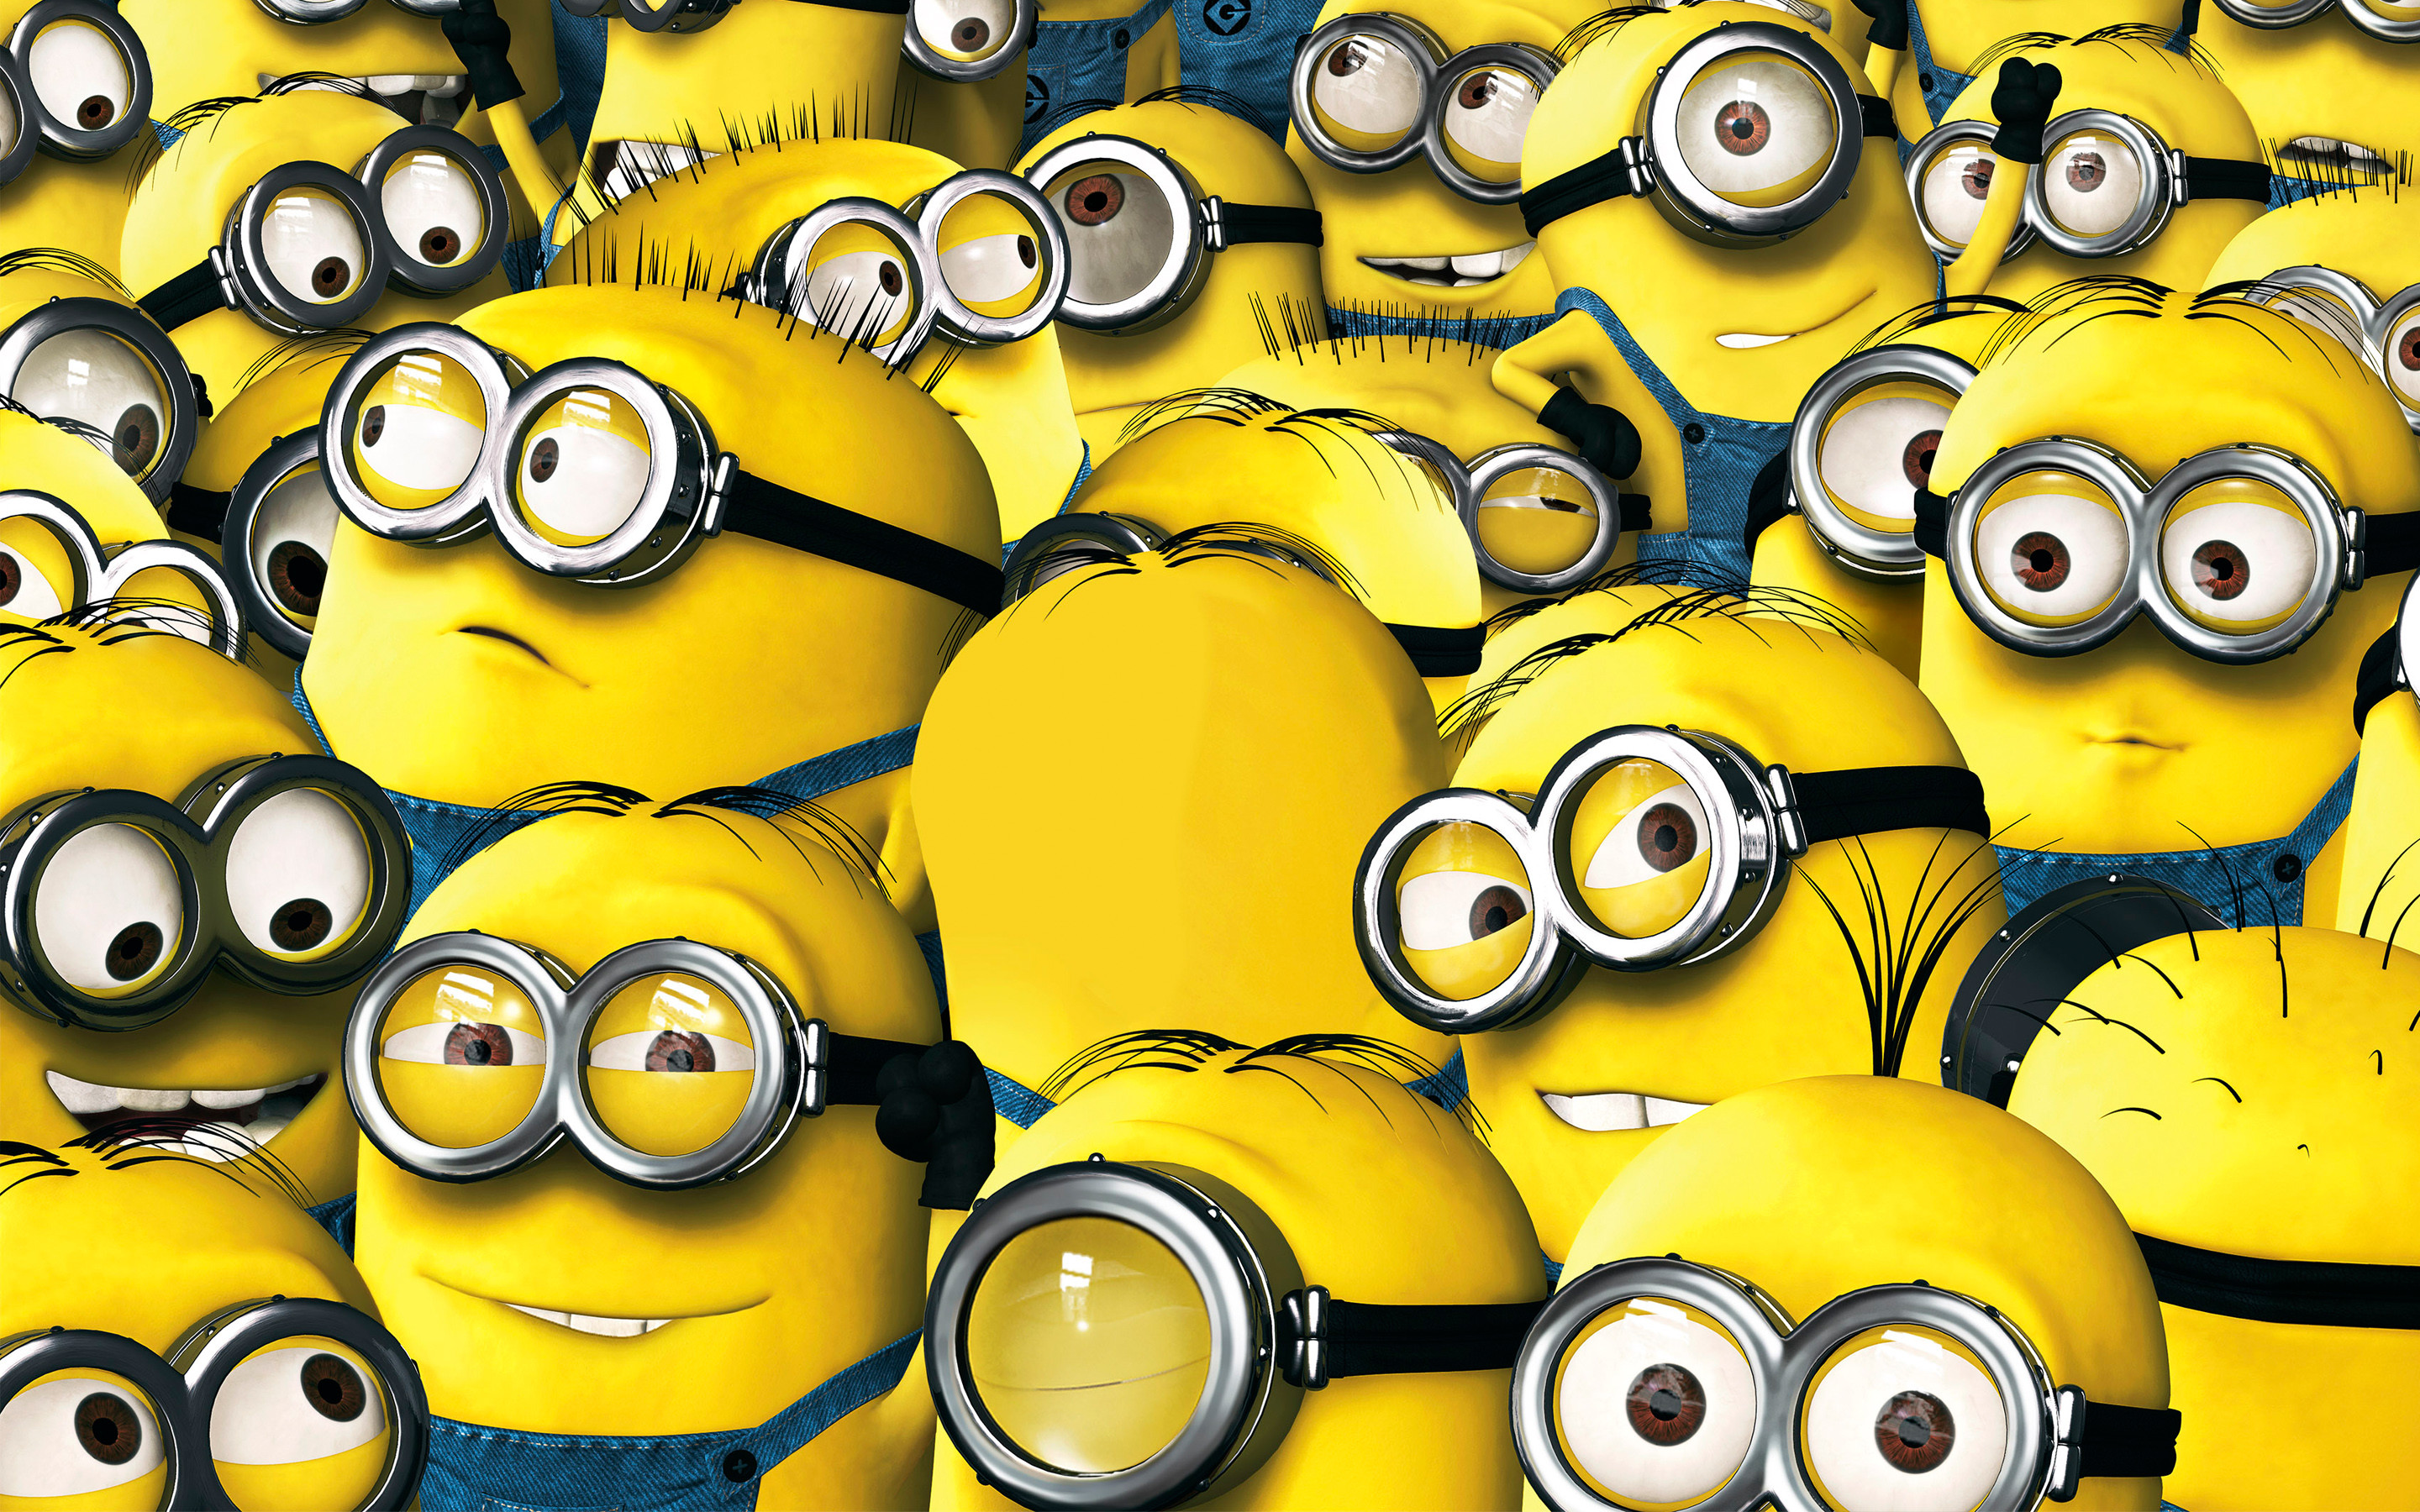 Res: 2880x1800, Me Minions HD Wallpapers Download Despicable Me Minions Desktop